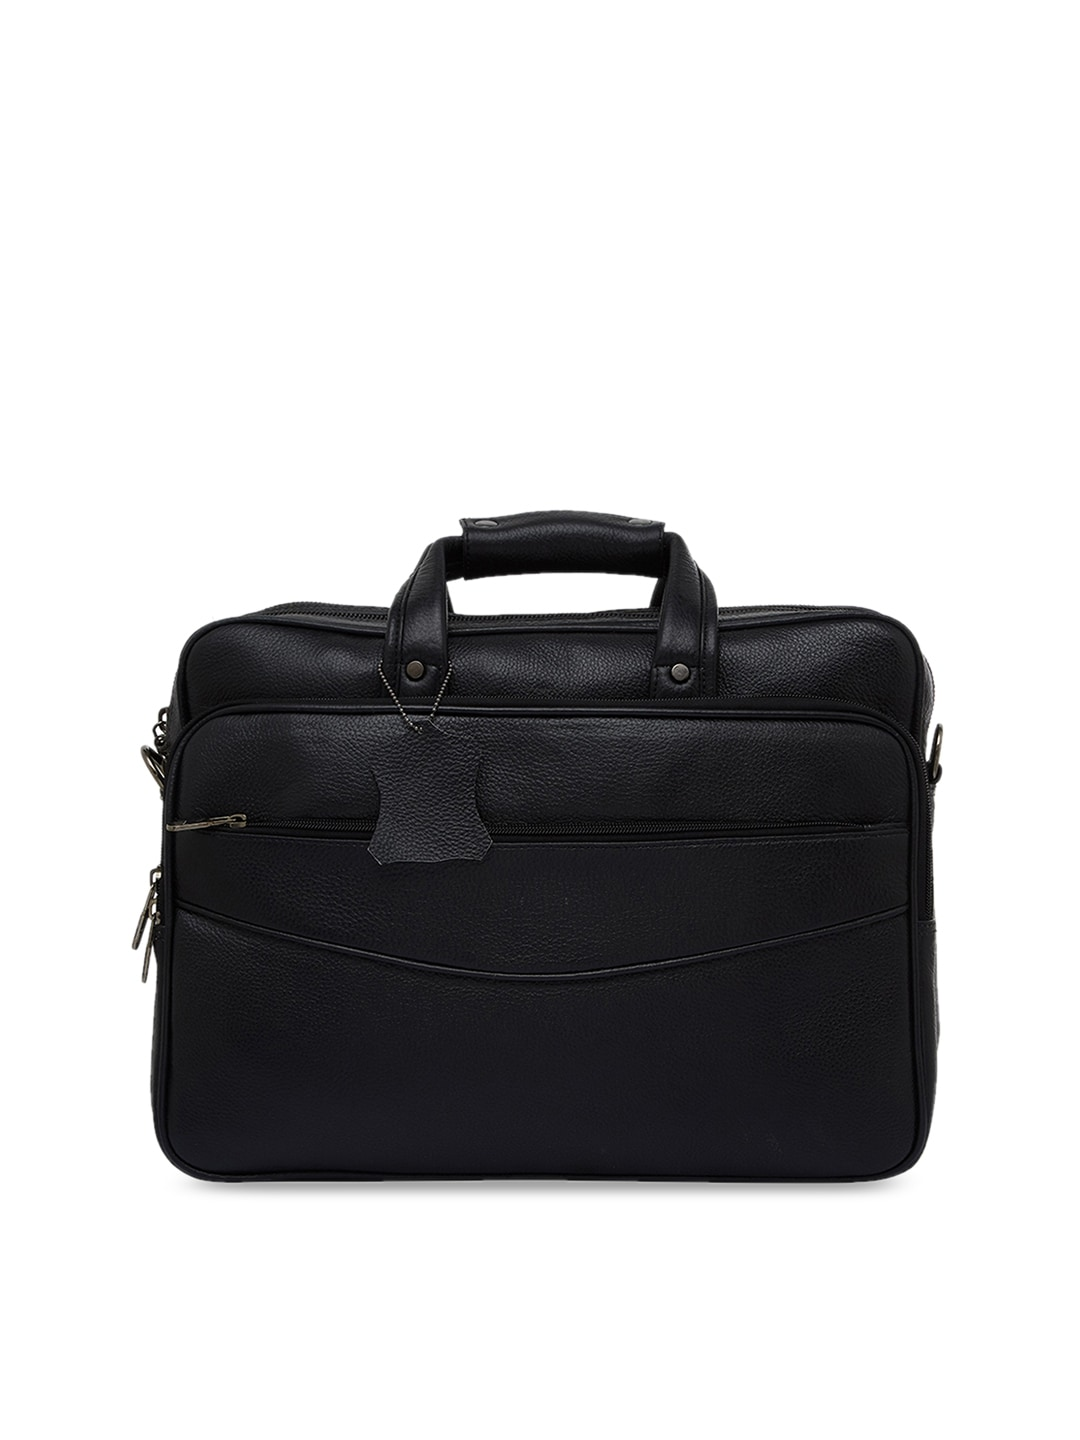 Office Bags - Buy Office Bags Online in India  d41b4d7ac9649